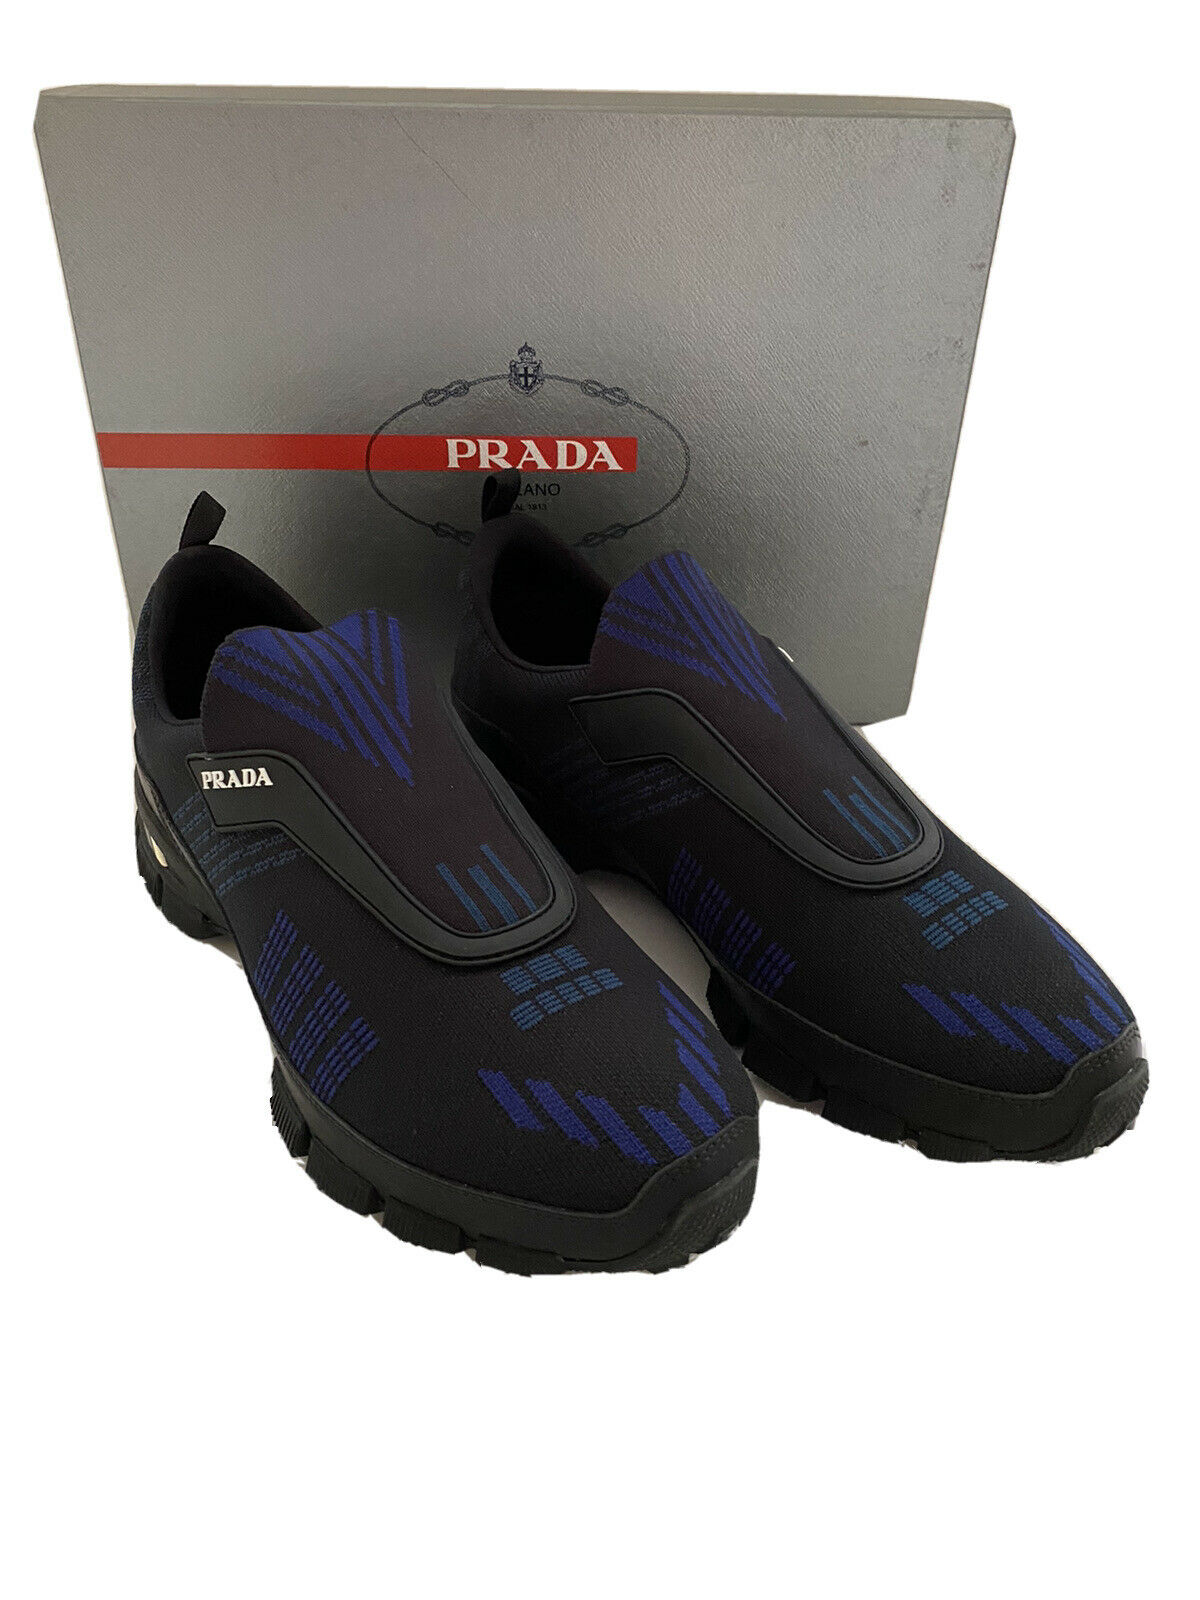 NIB $795 PRADA Men's  Black/Blue Knitted Nylon/Leather Sneakers 8.5 US 4O3223